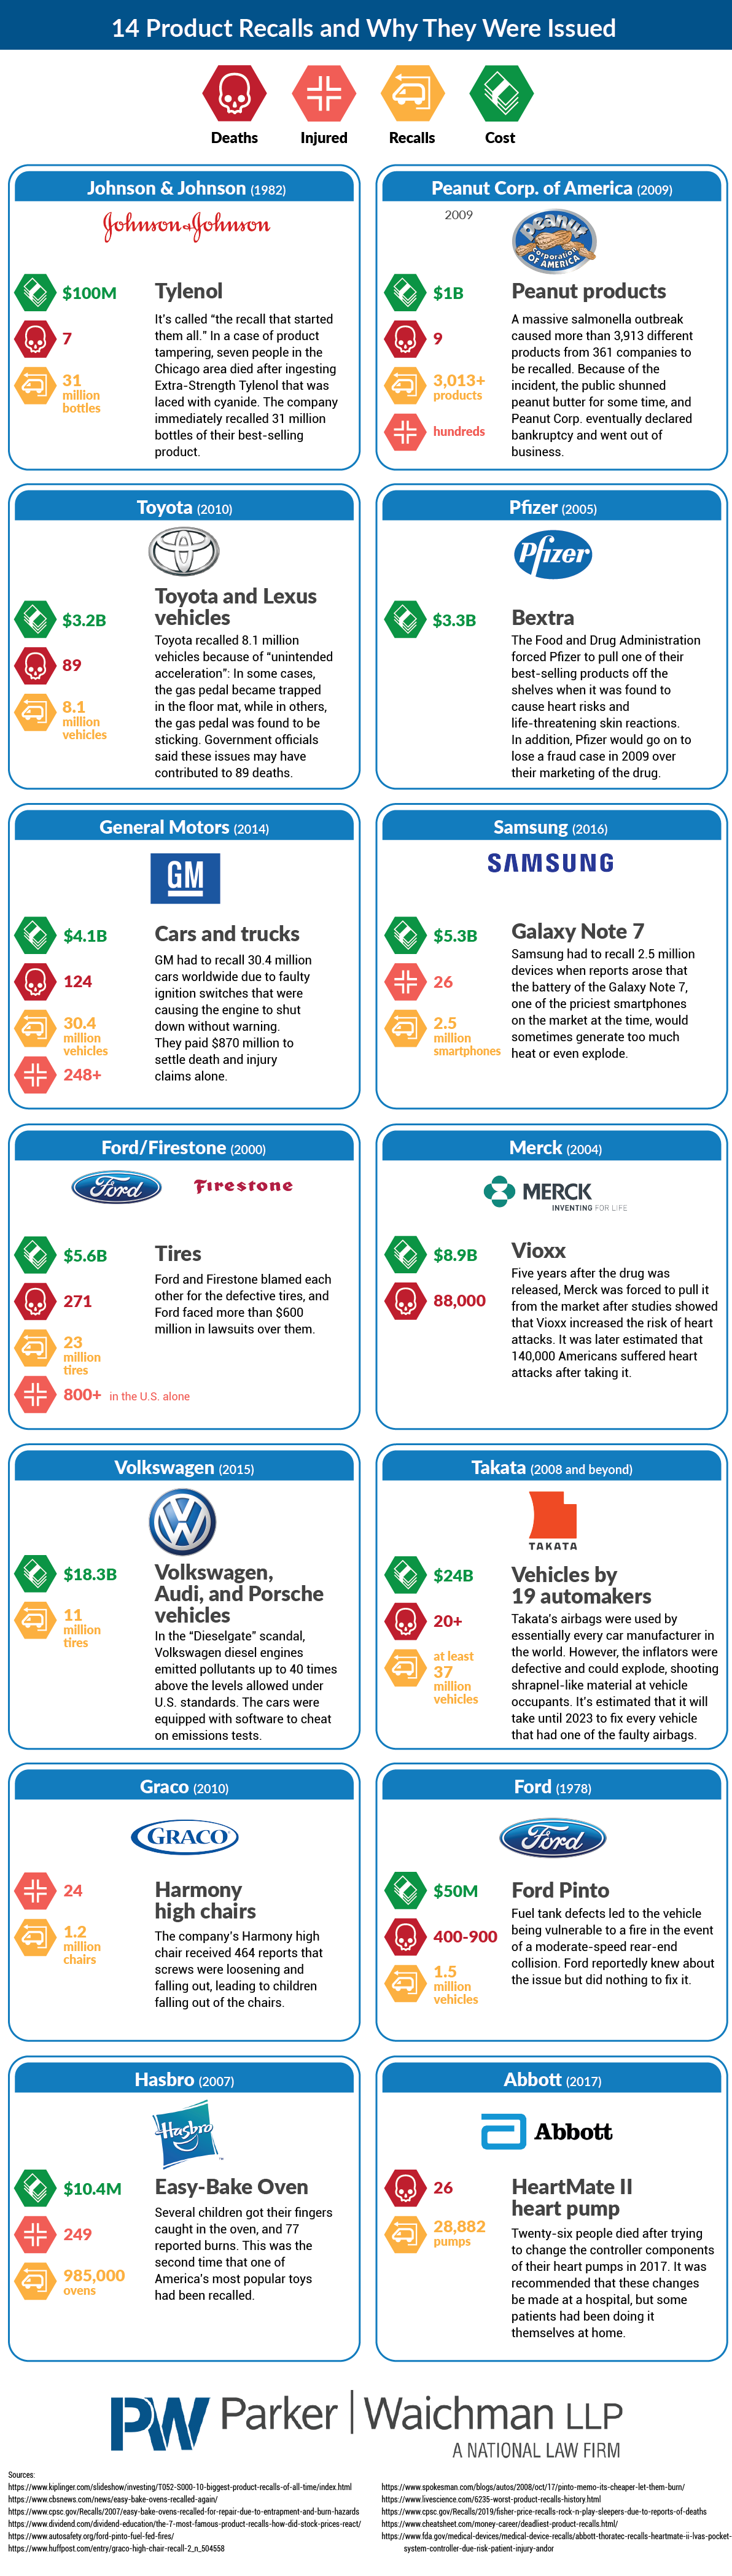 14 Product Recalls and Why They Were Issued #infographic